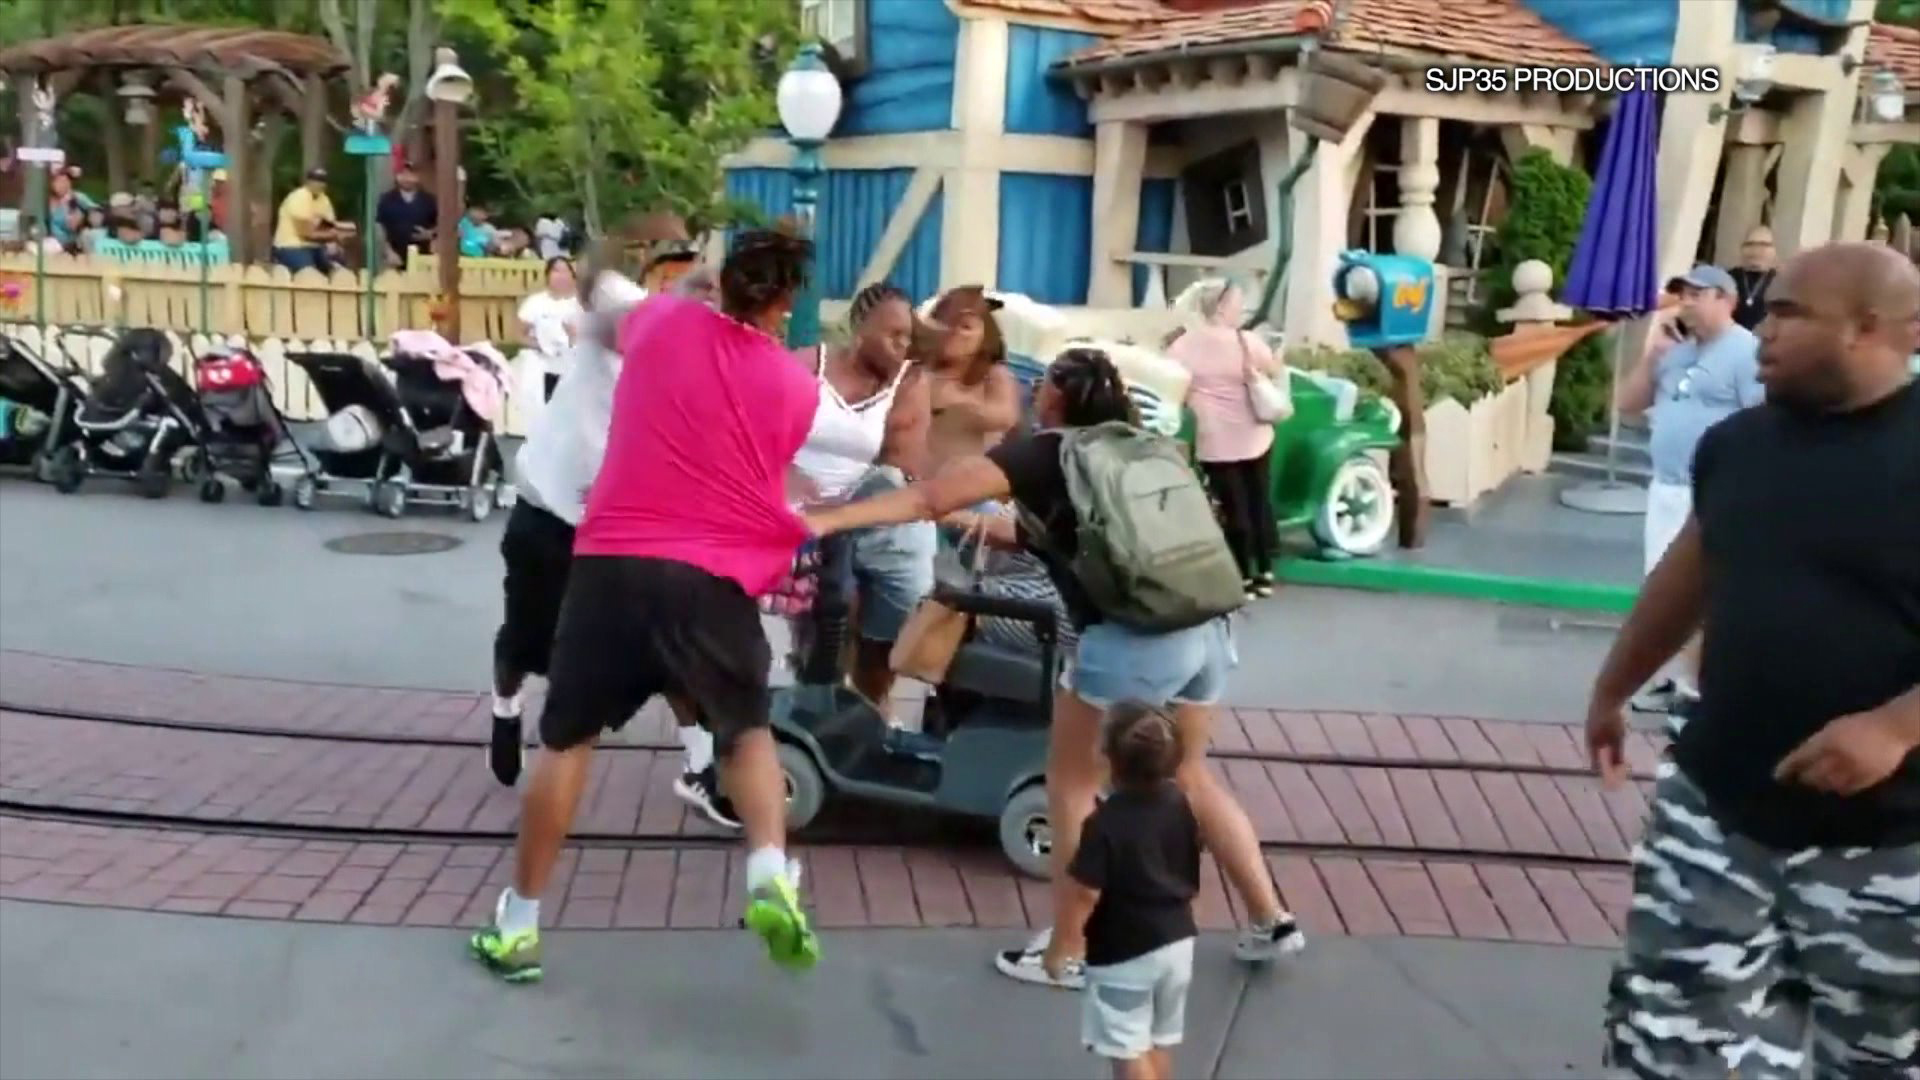 A video posted to YouTube on July 7,2019 captured a violent fight that broke out at Disneyland. (Credit: